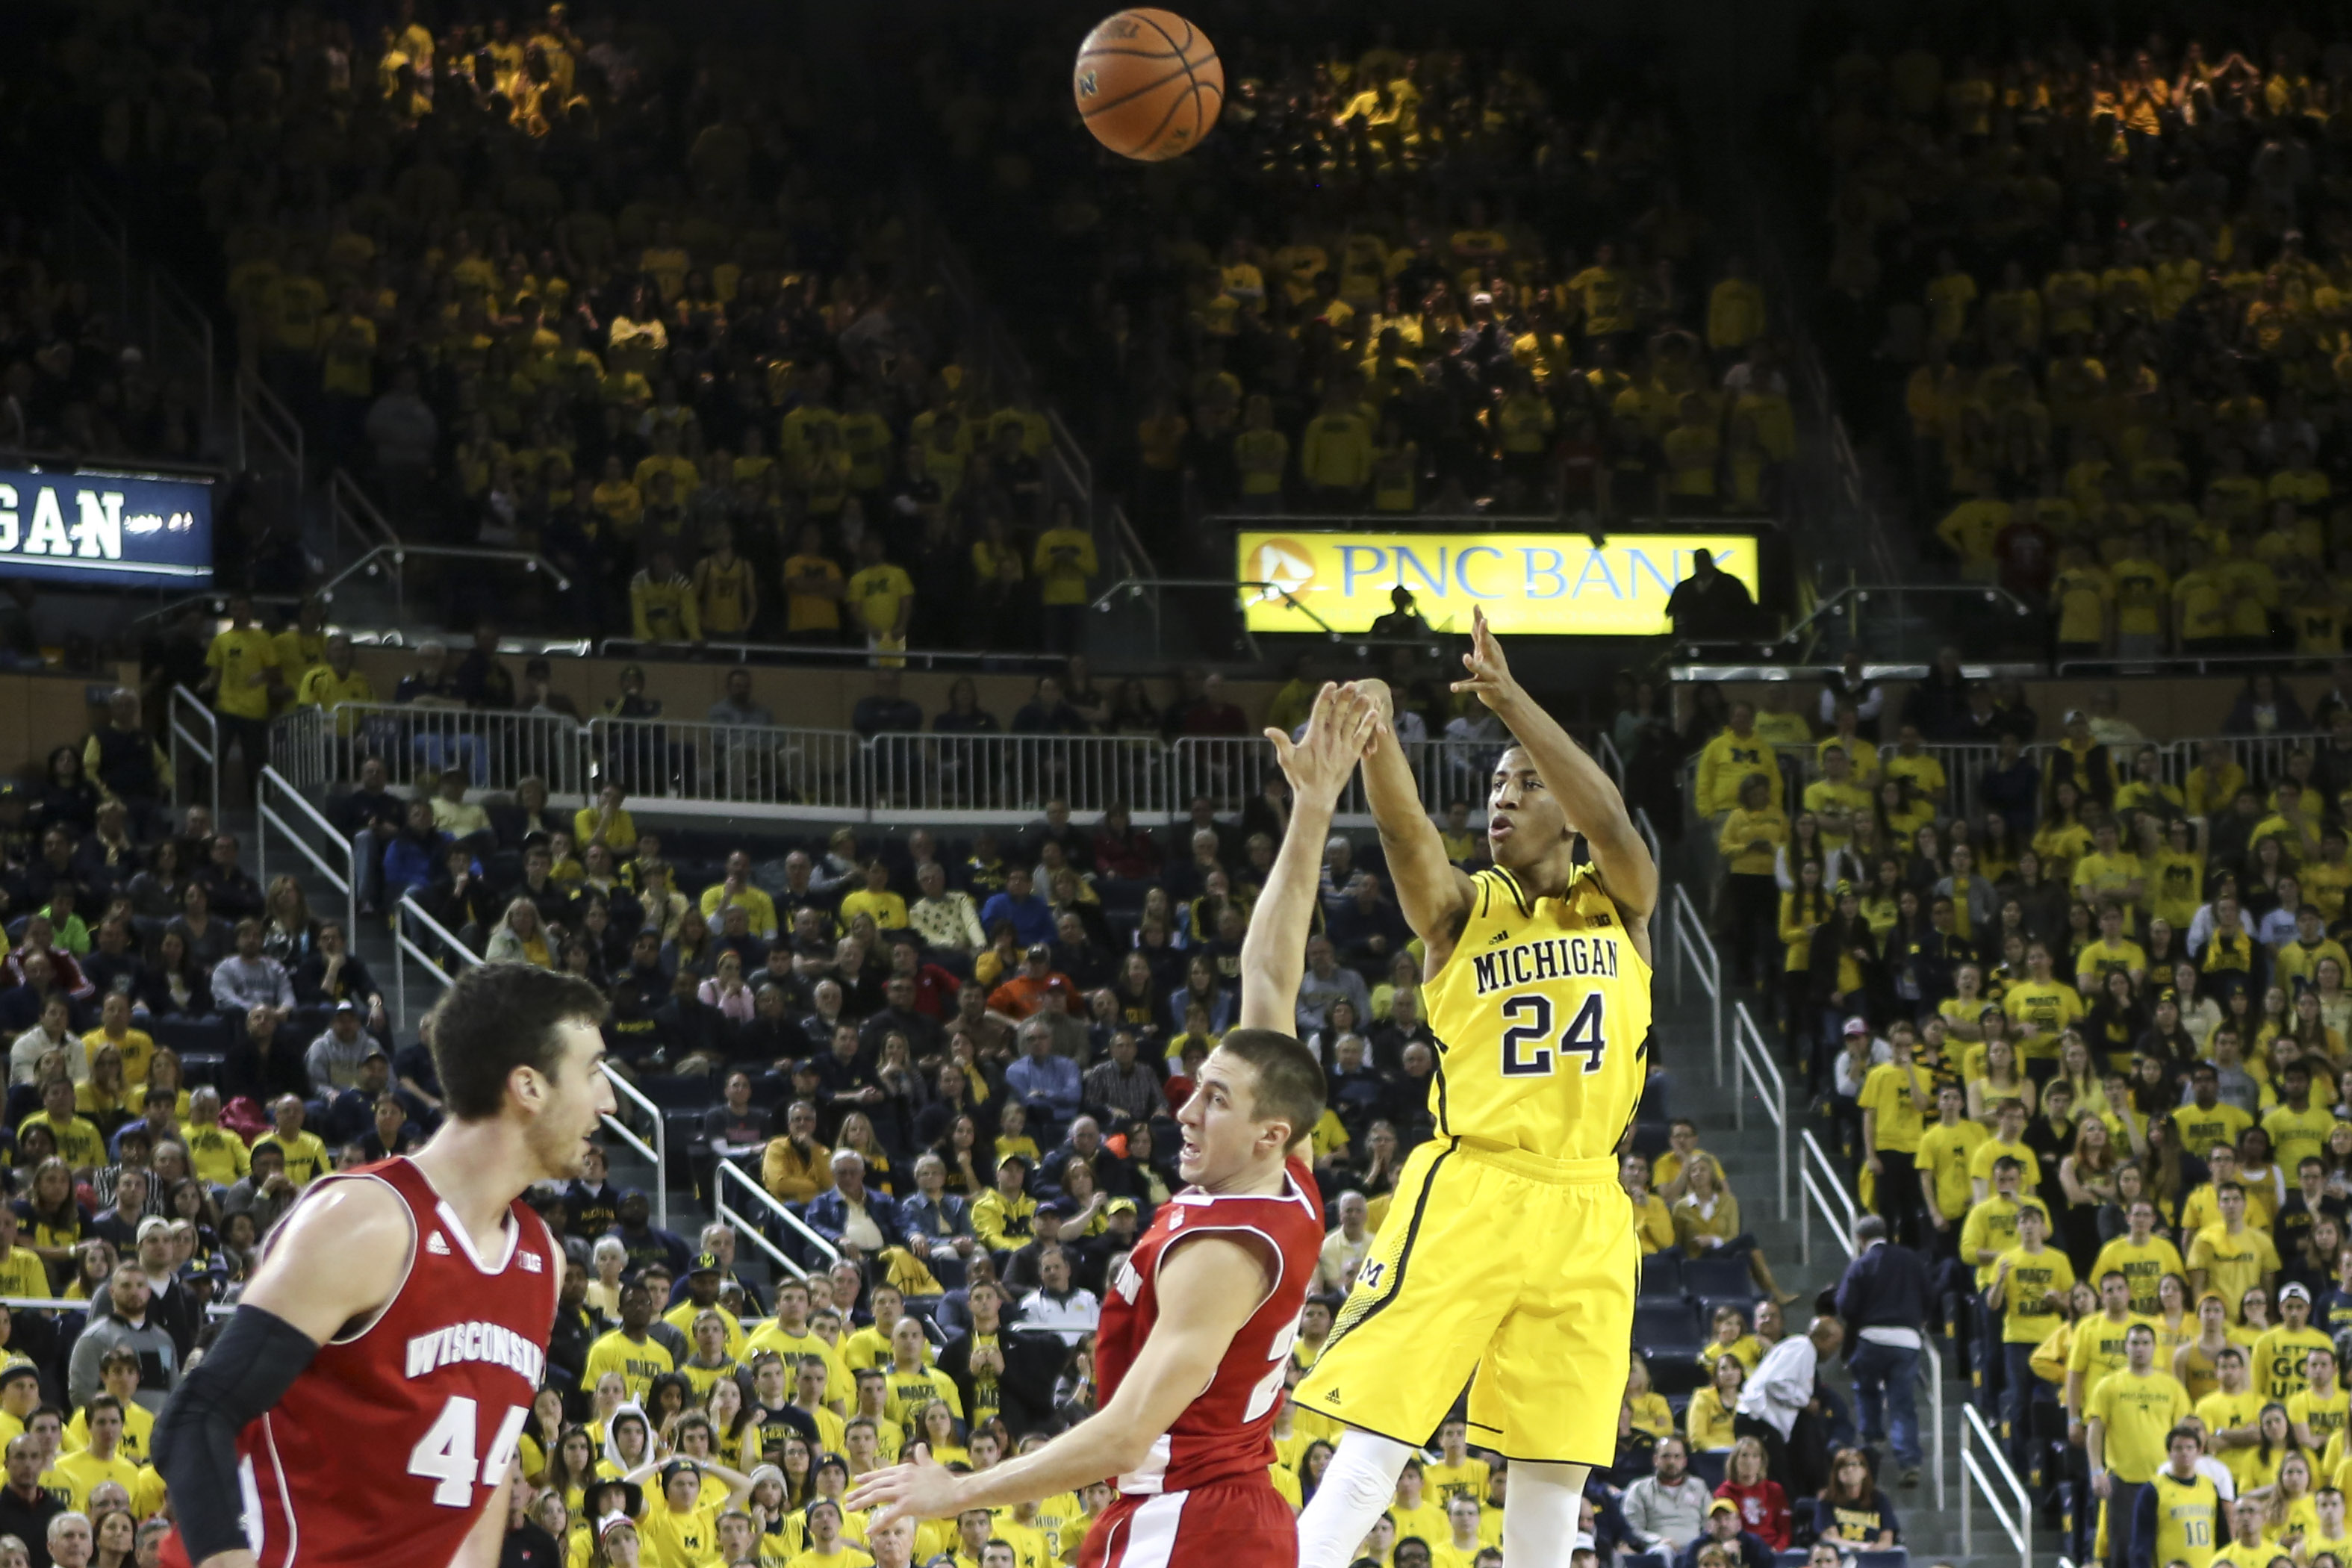 Wisconsin 69, Michigan 64 – #29